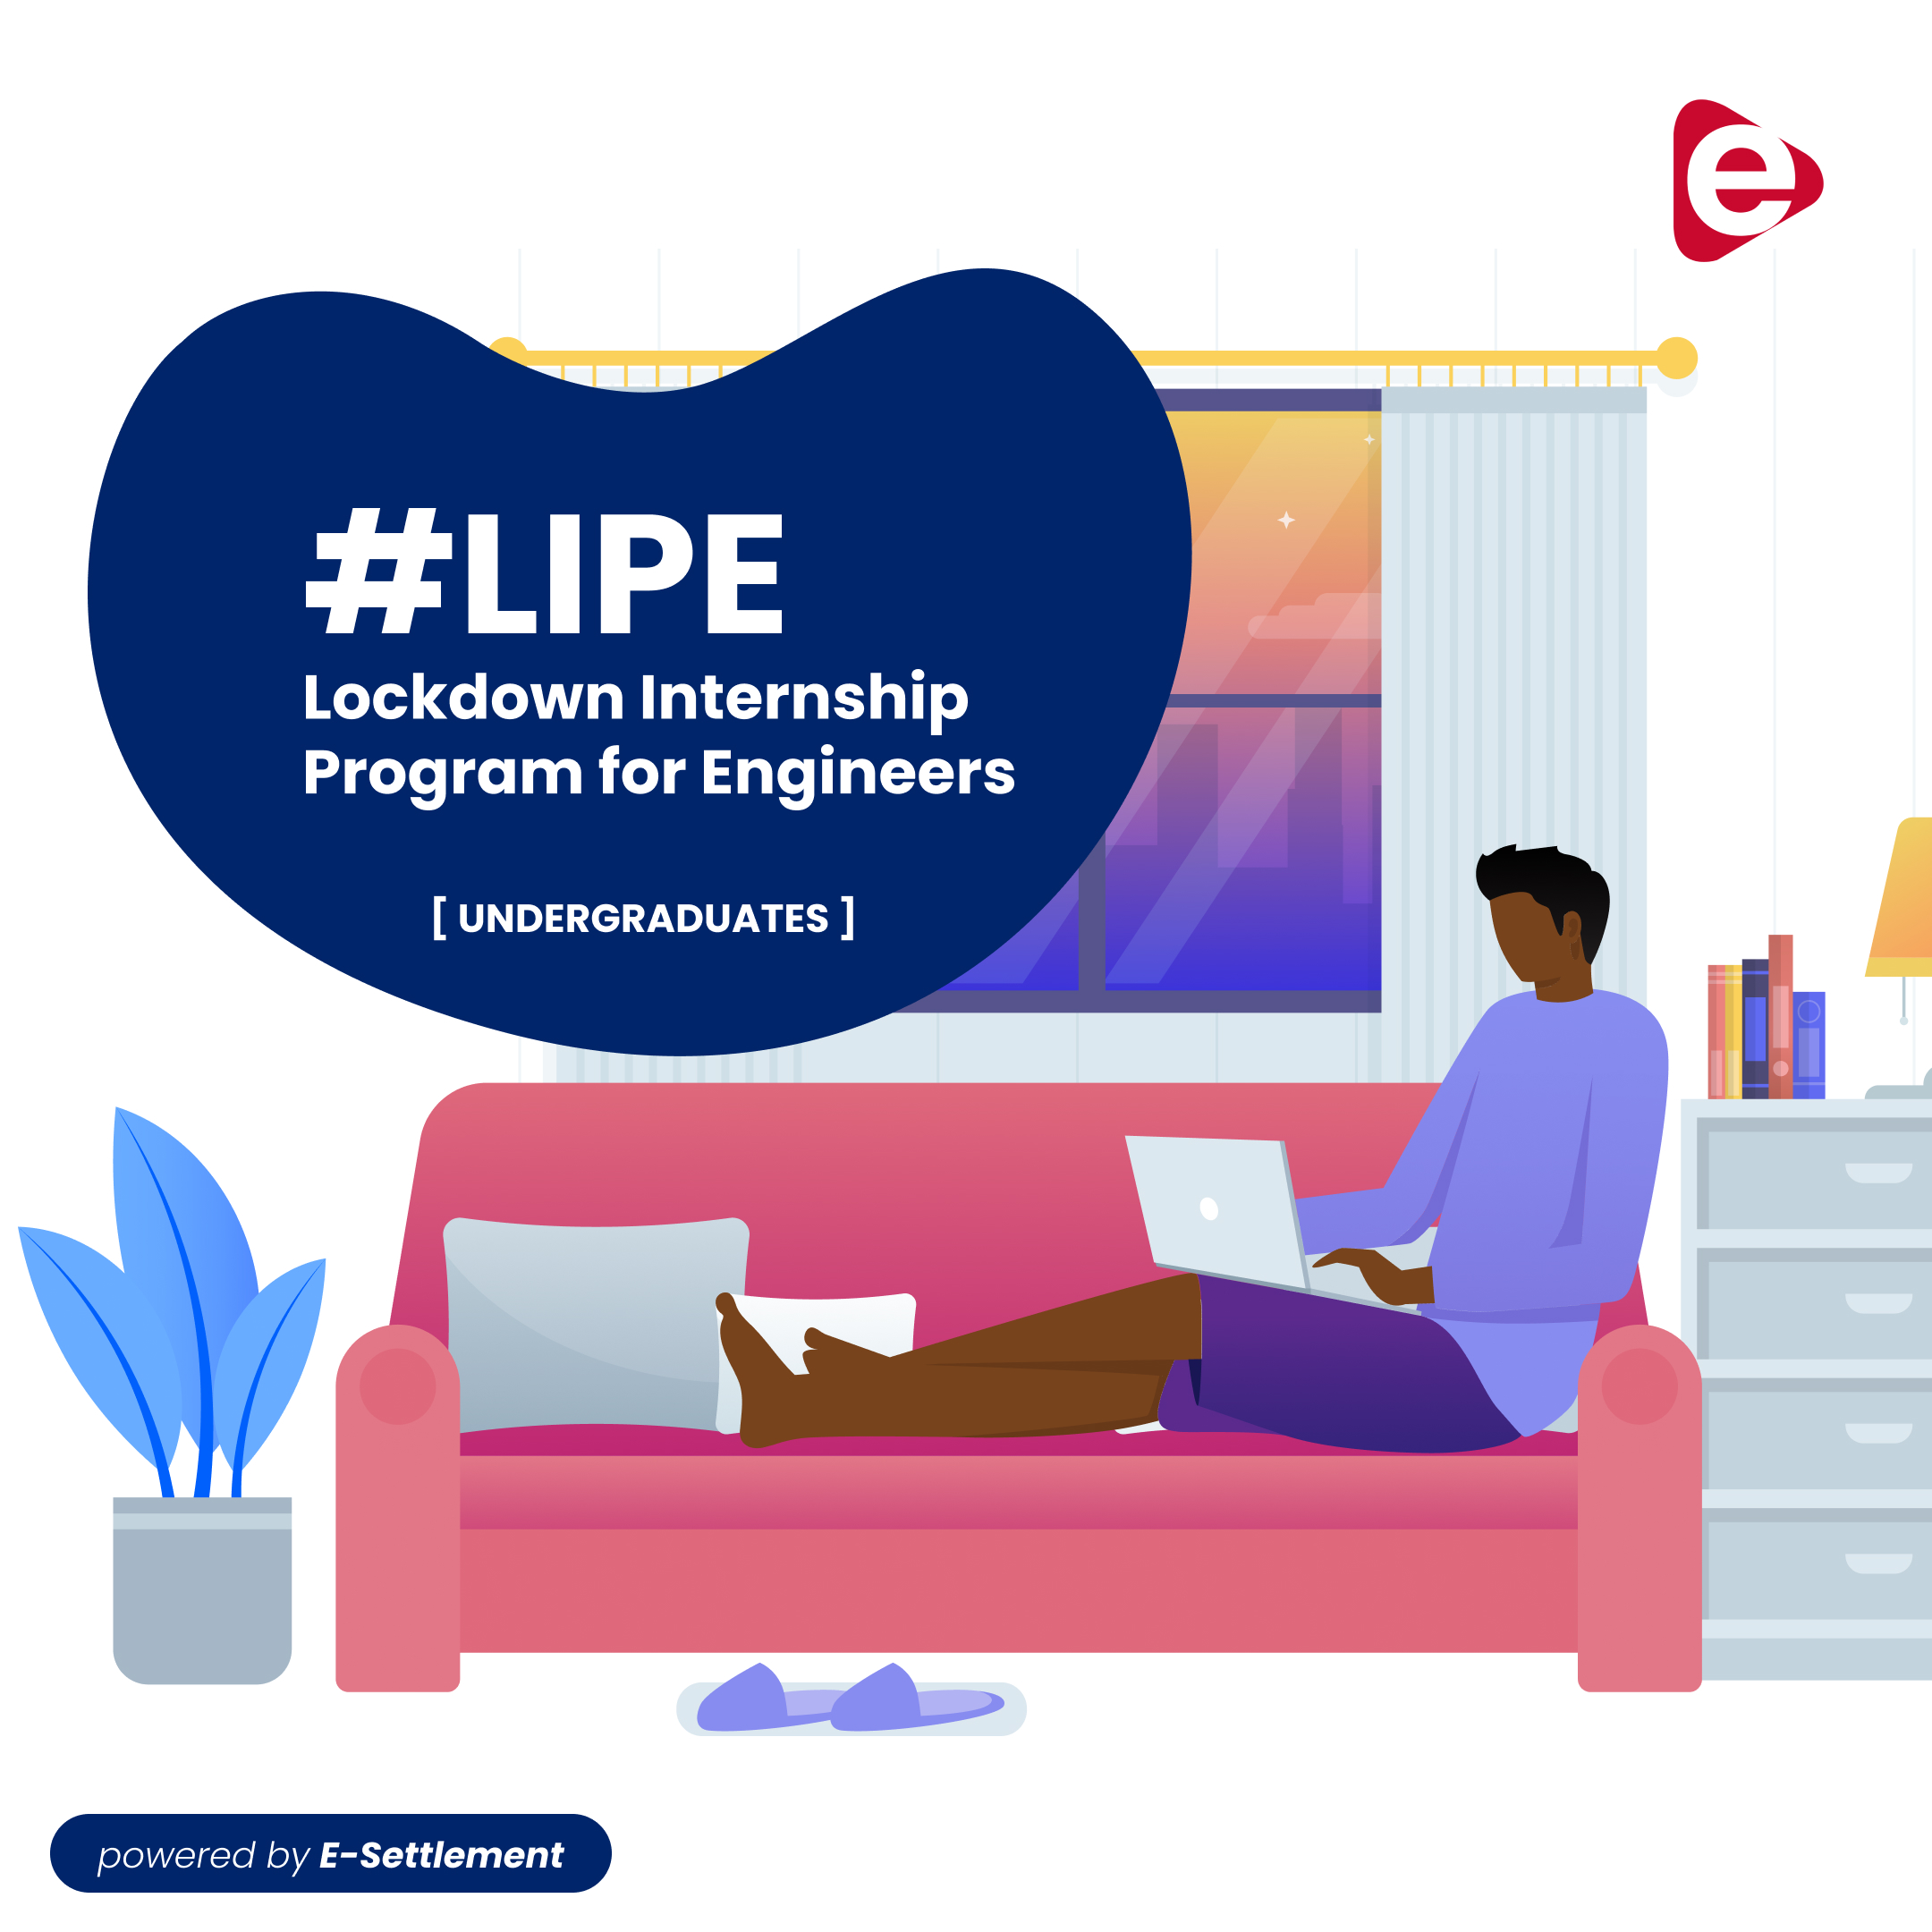 E-Settlement Limited provides job opportunities for undergraduates with LIPE COVID-19 relief program